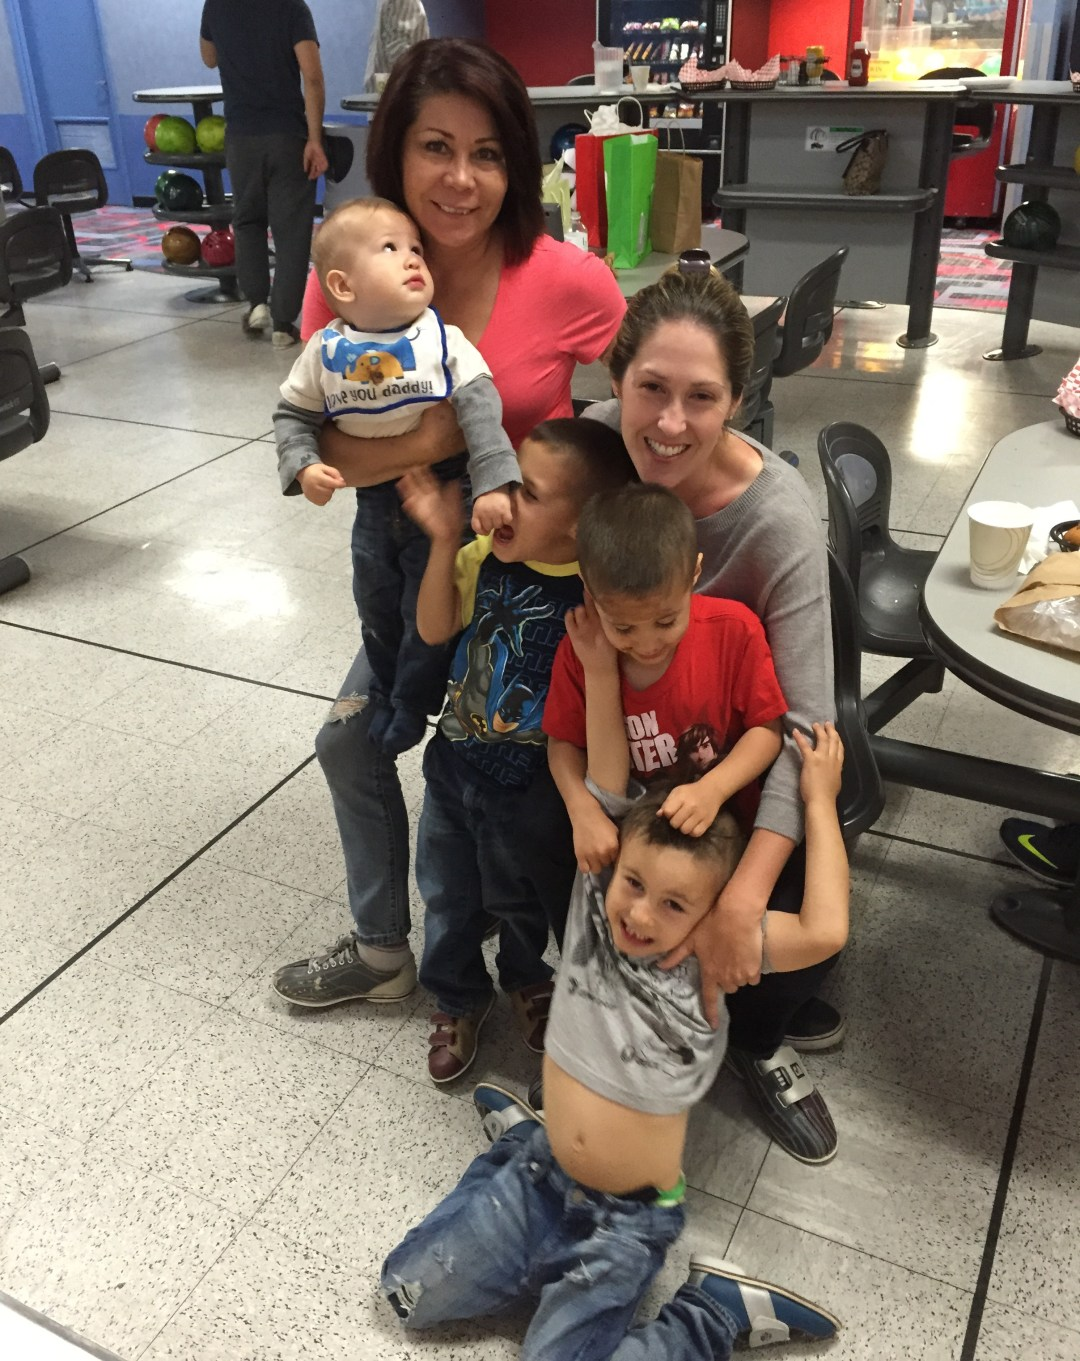 Bowling on Mother's Day - we are quite the handfuls!